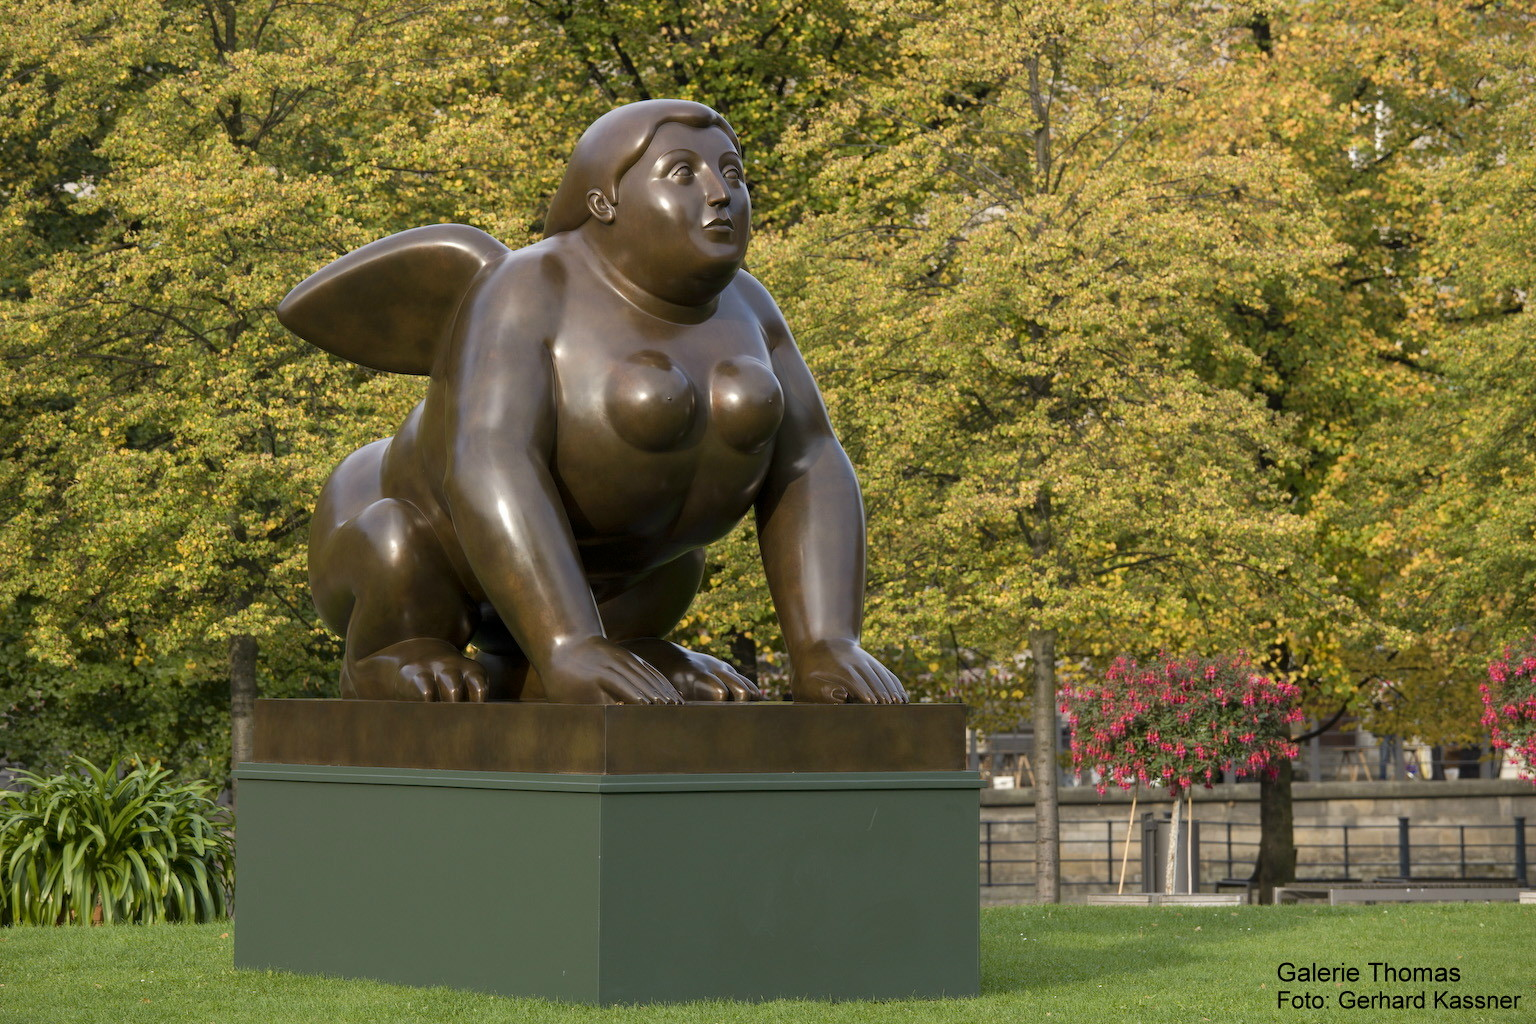 Botero's Sphinx, exhibited in Berlin